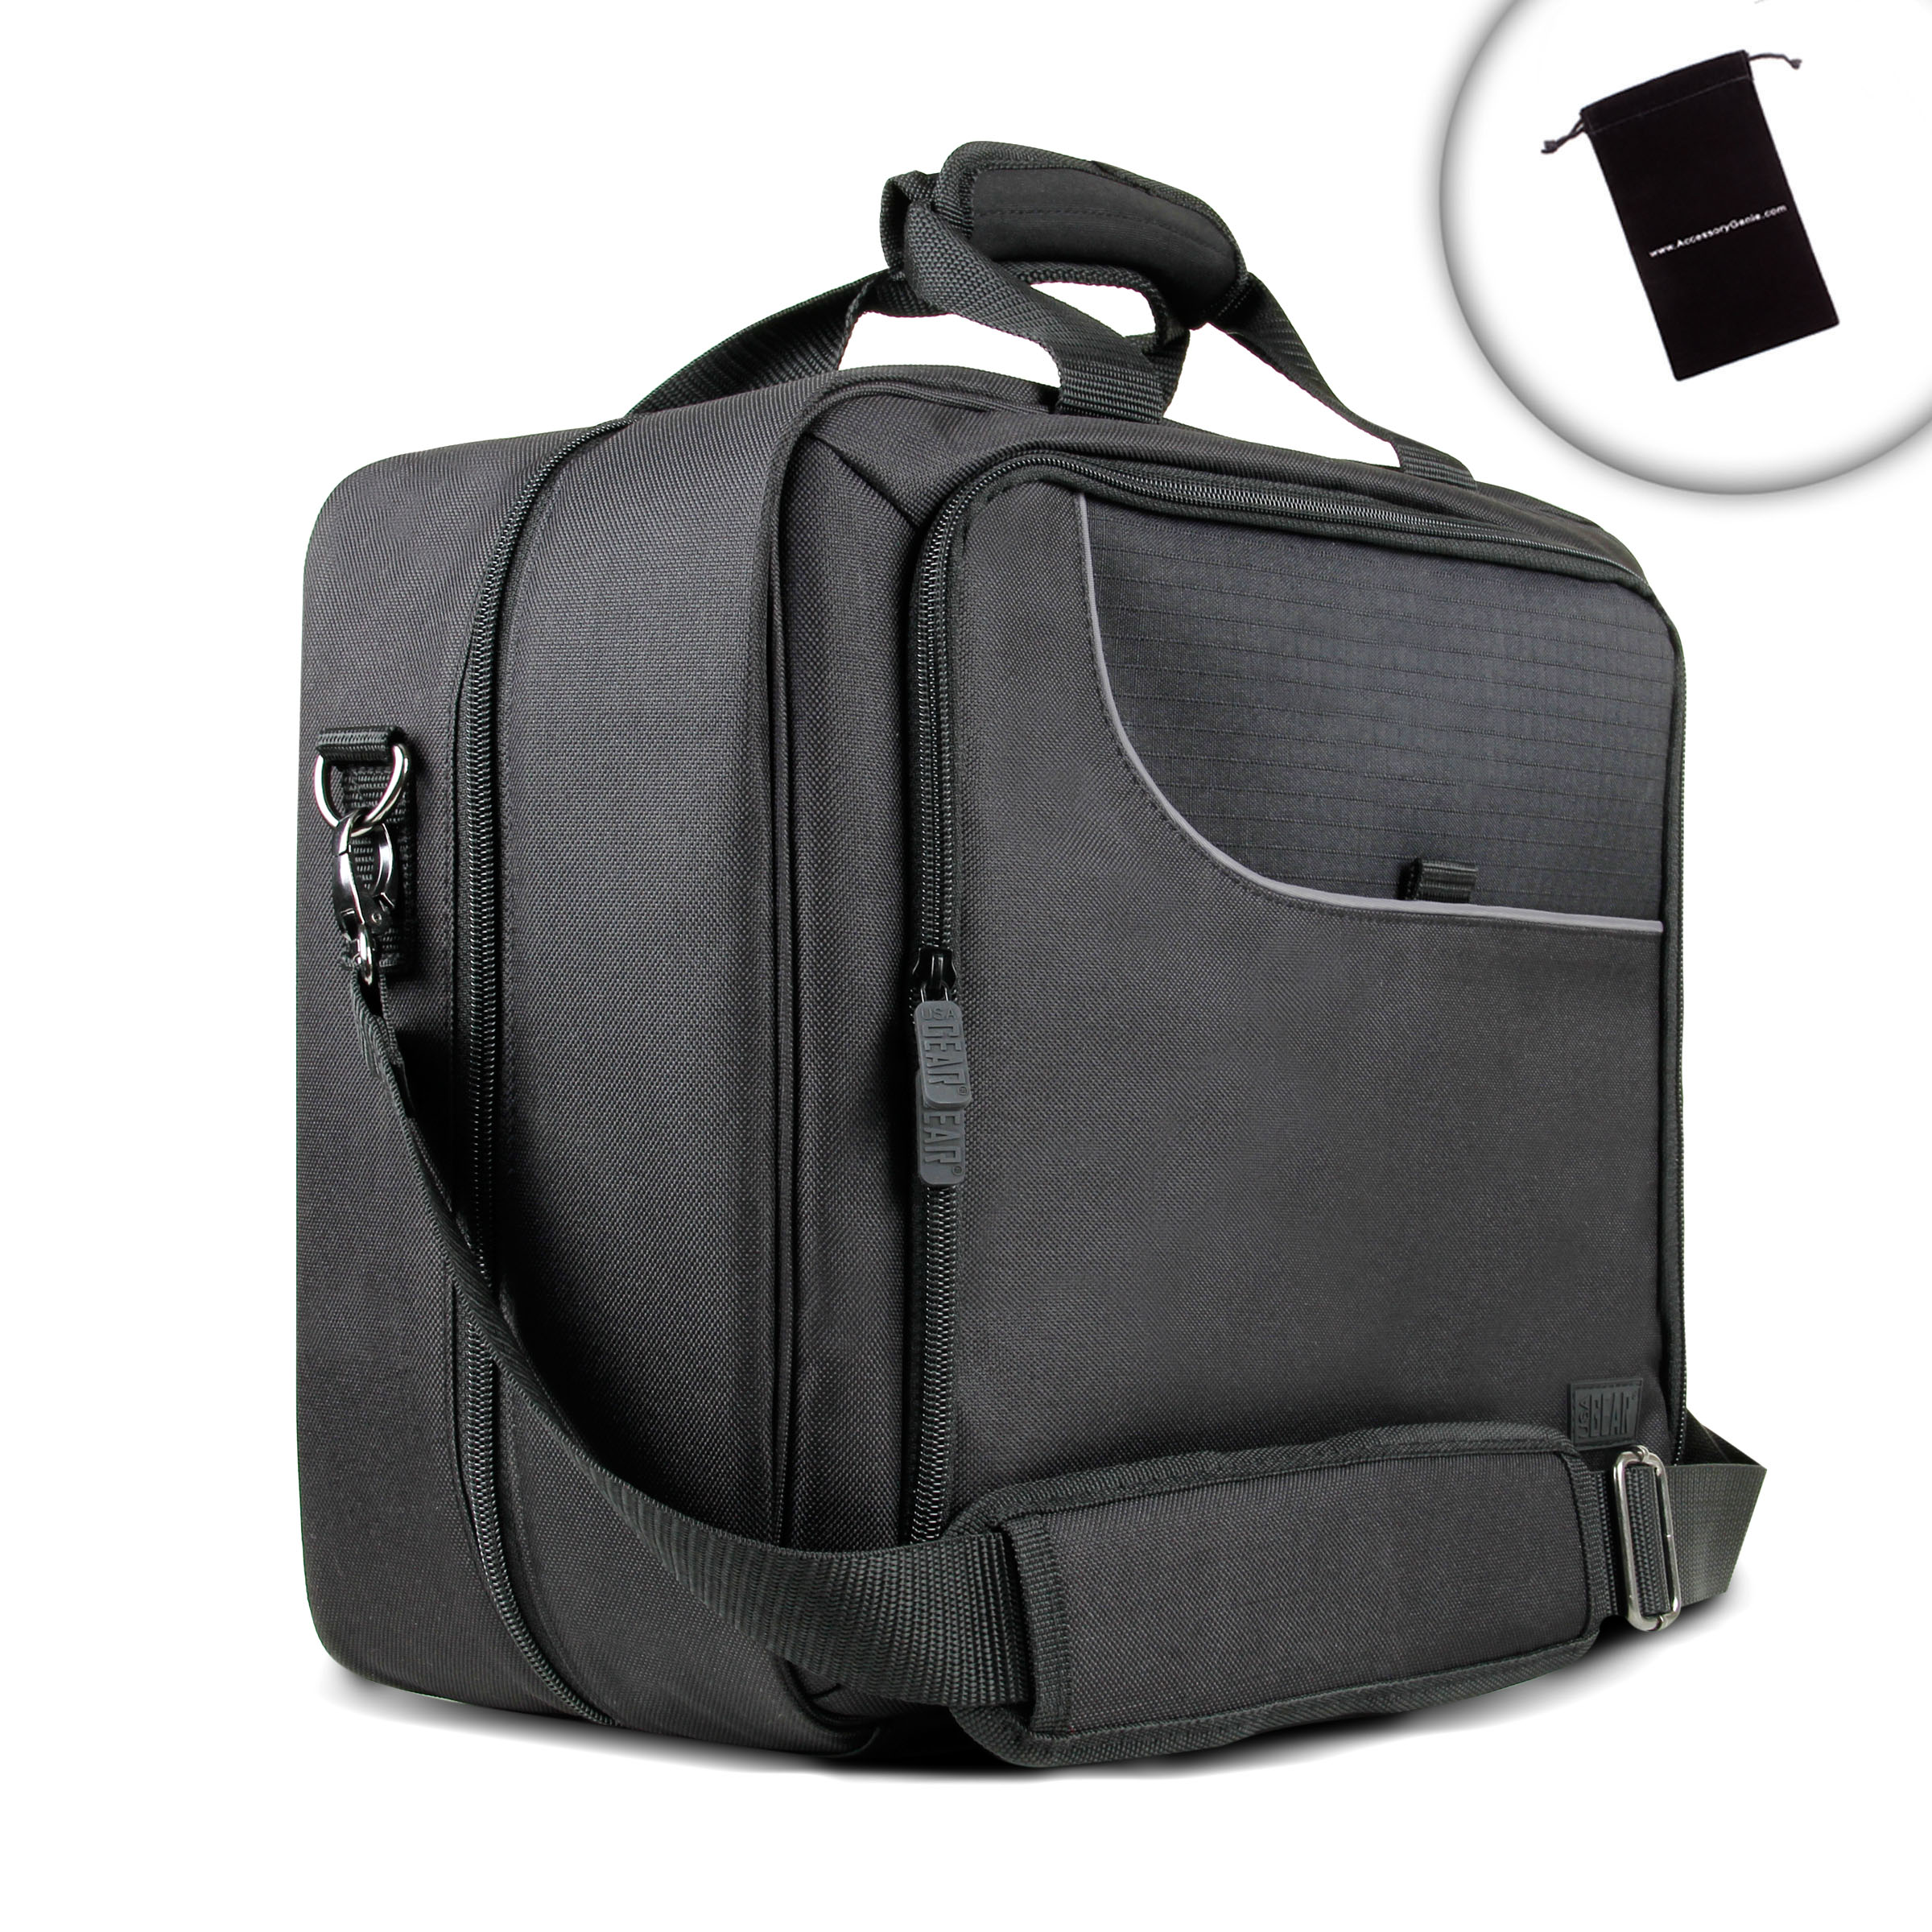 Projector bag with padded storage compartments shoulder for Pocket projector case